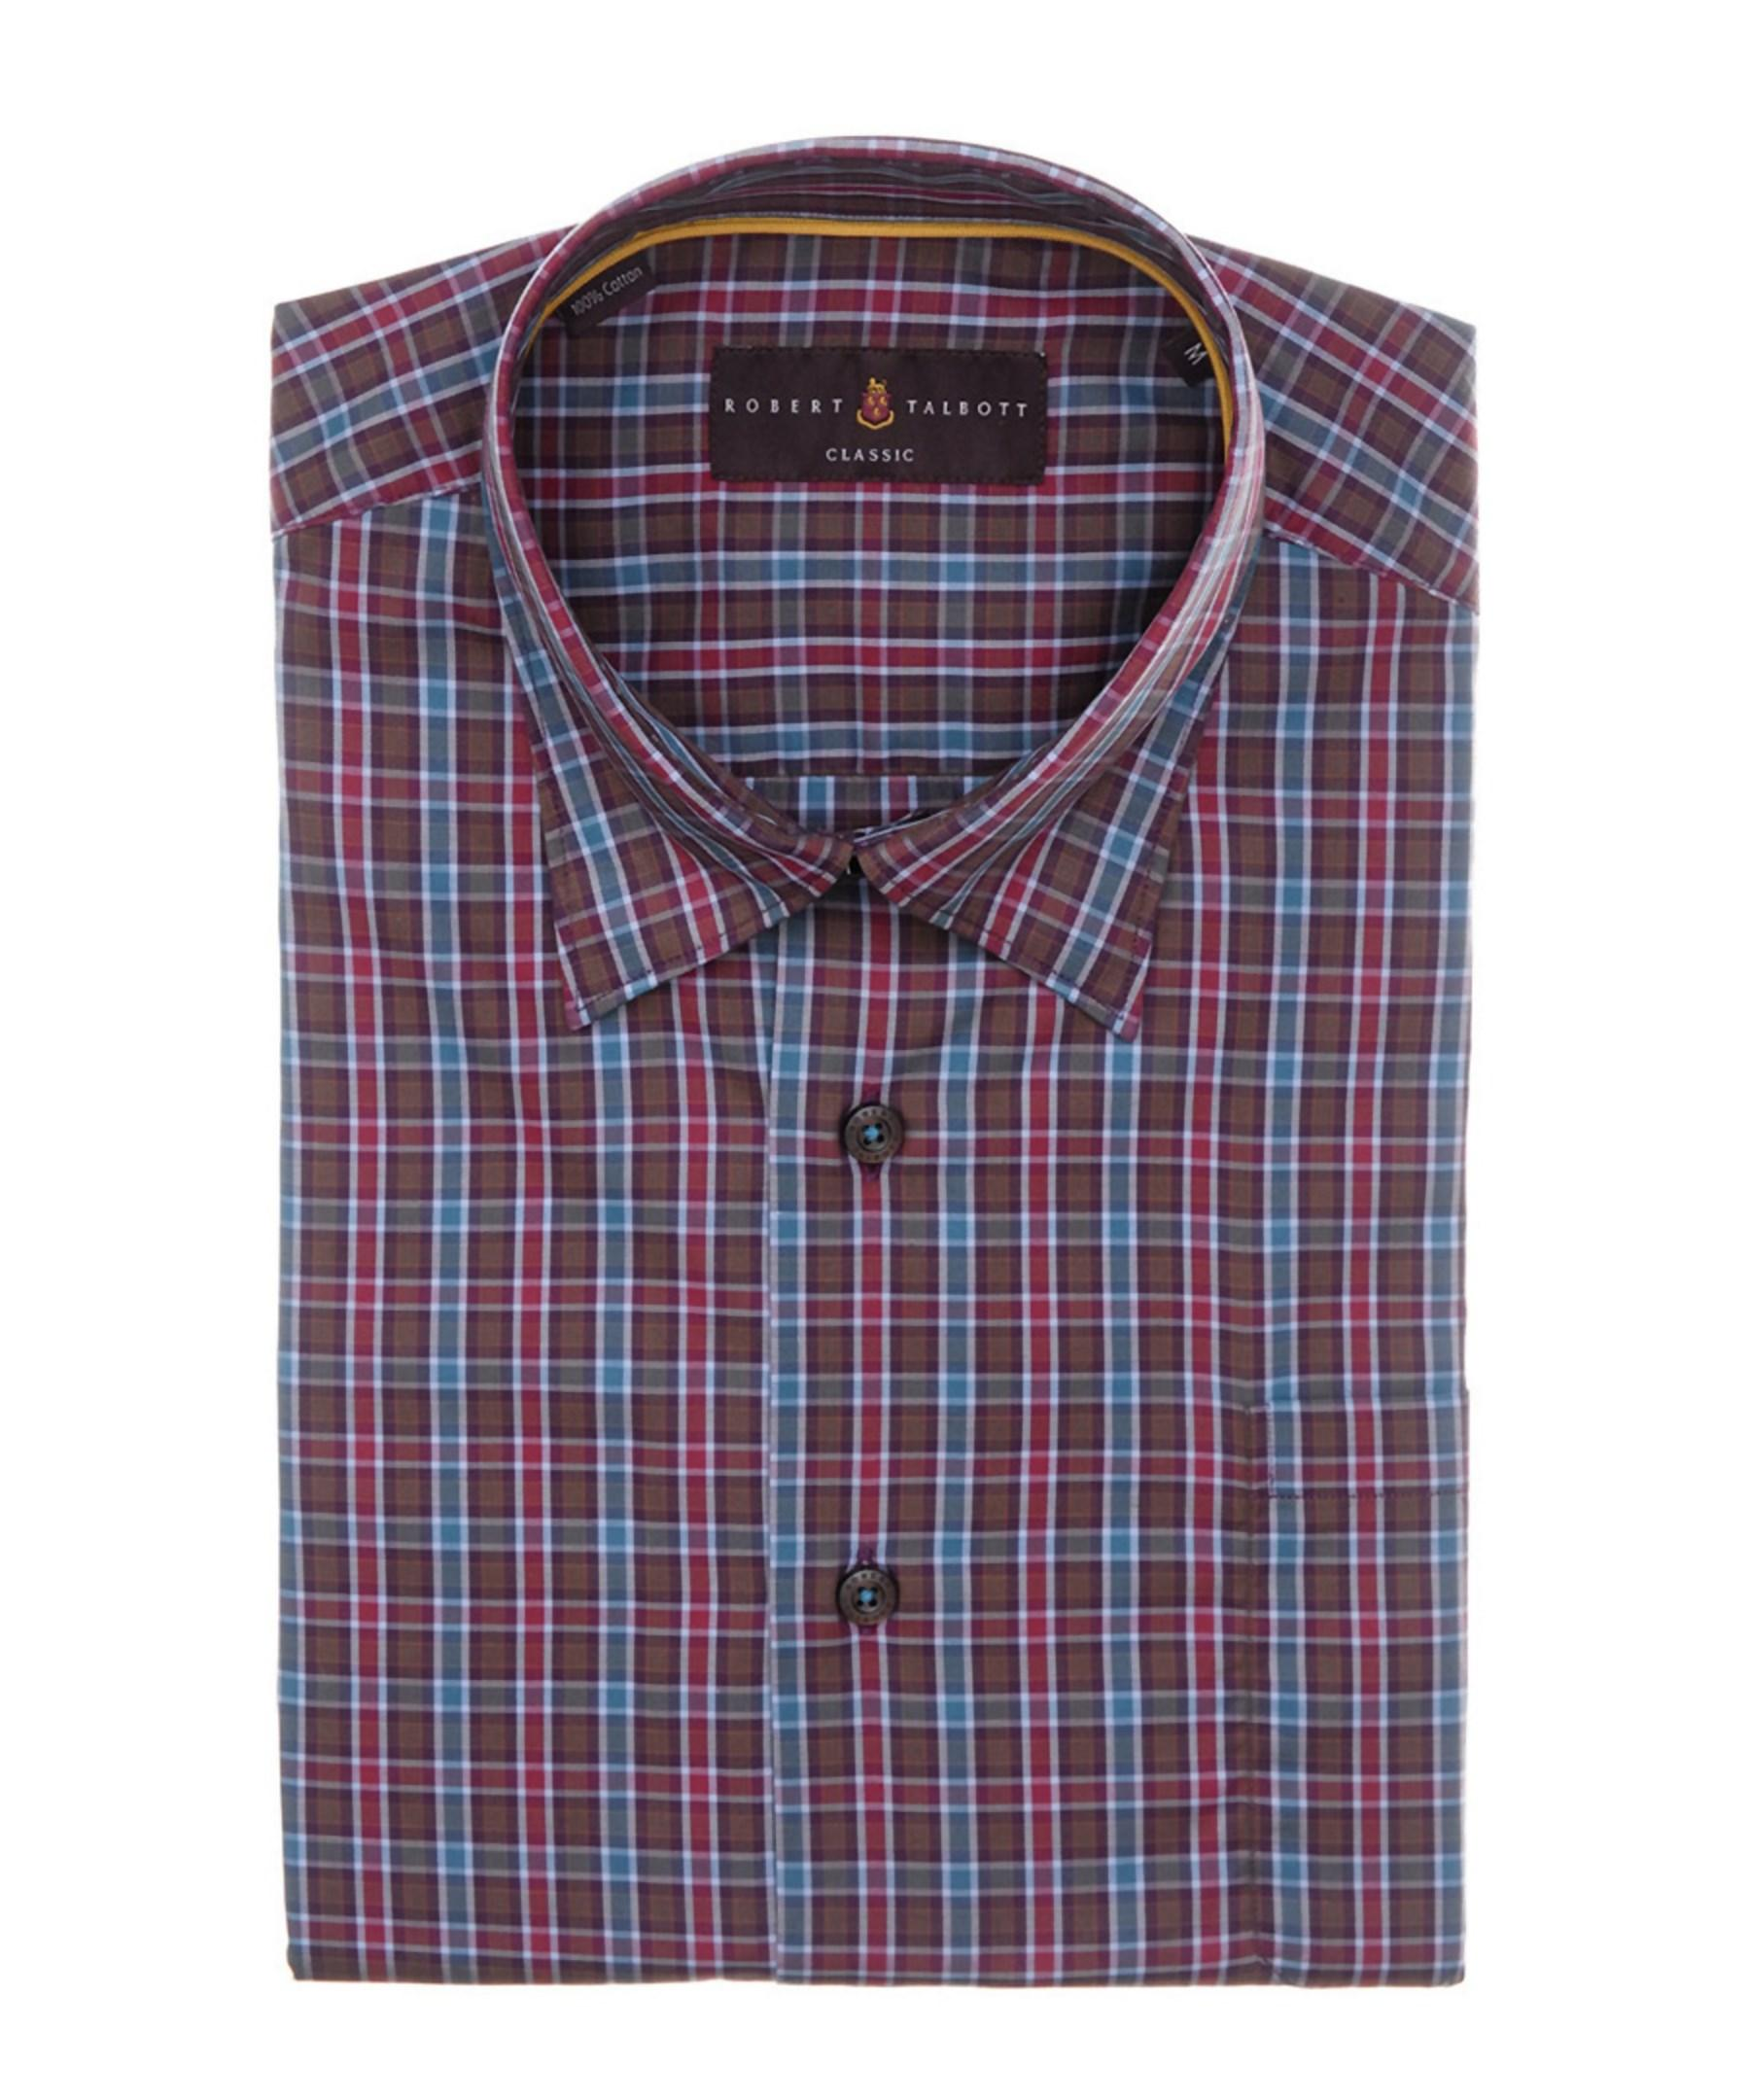 Robert talbott anderson classic fit woven shirt in red for for Robert talbott shirts sale